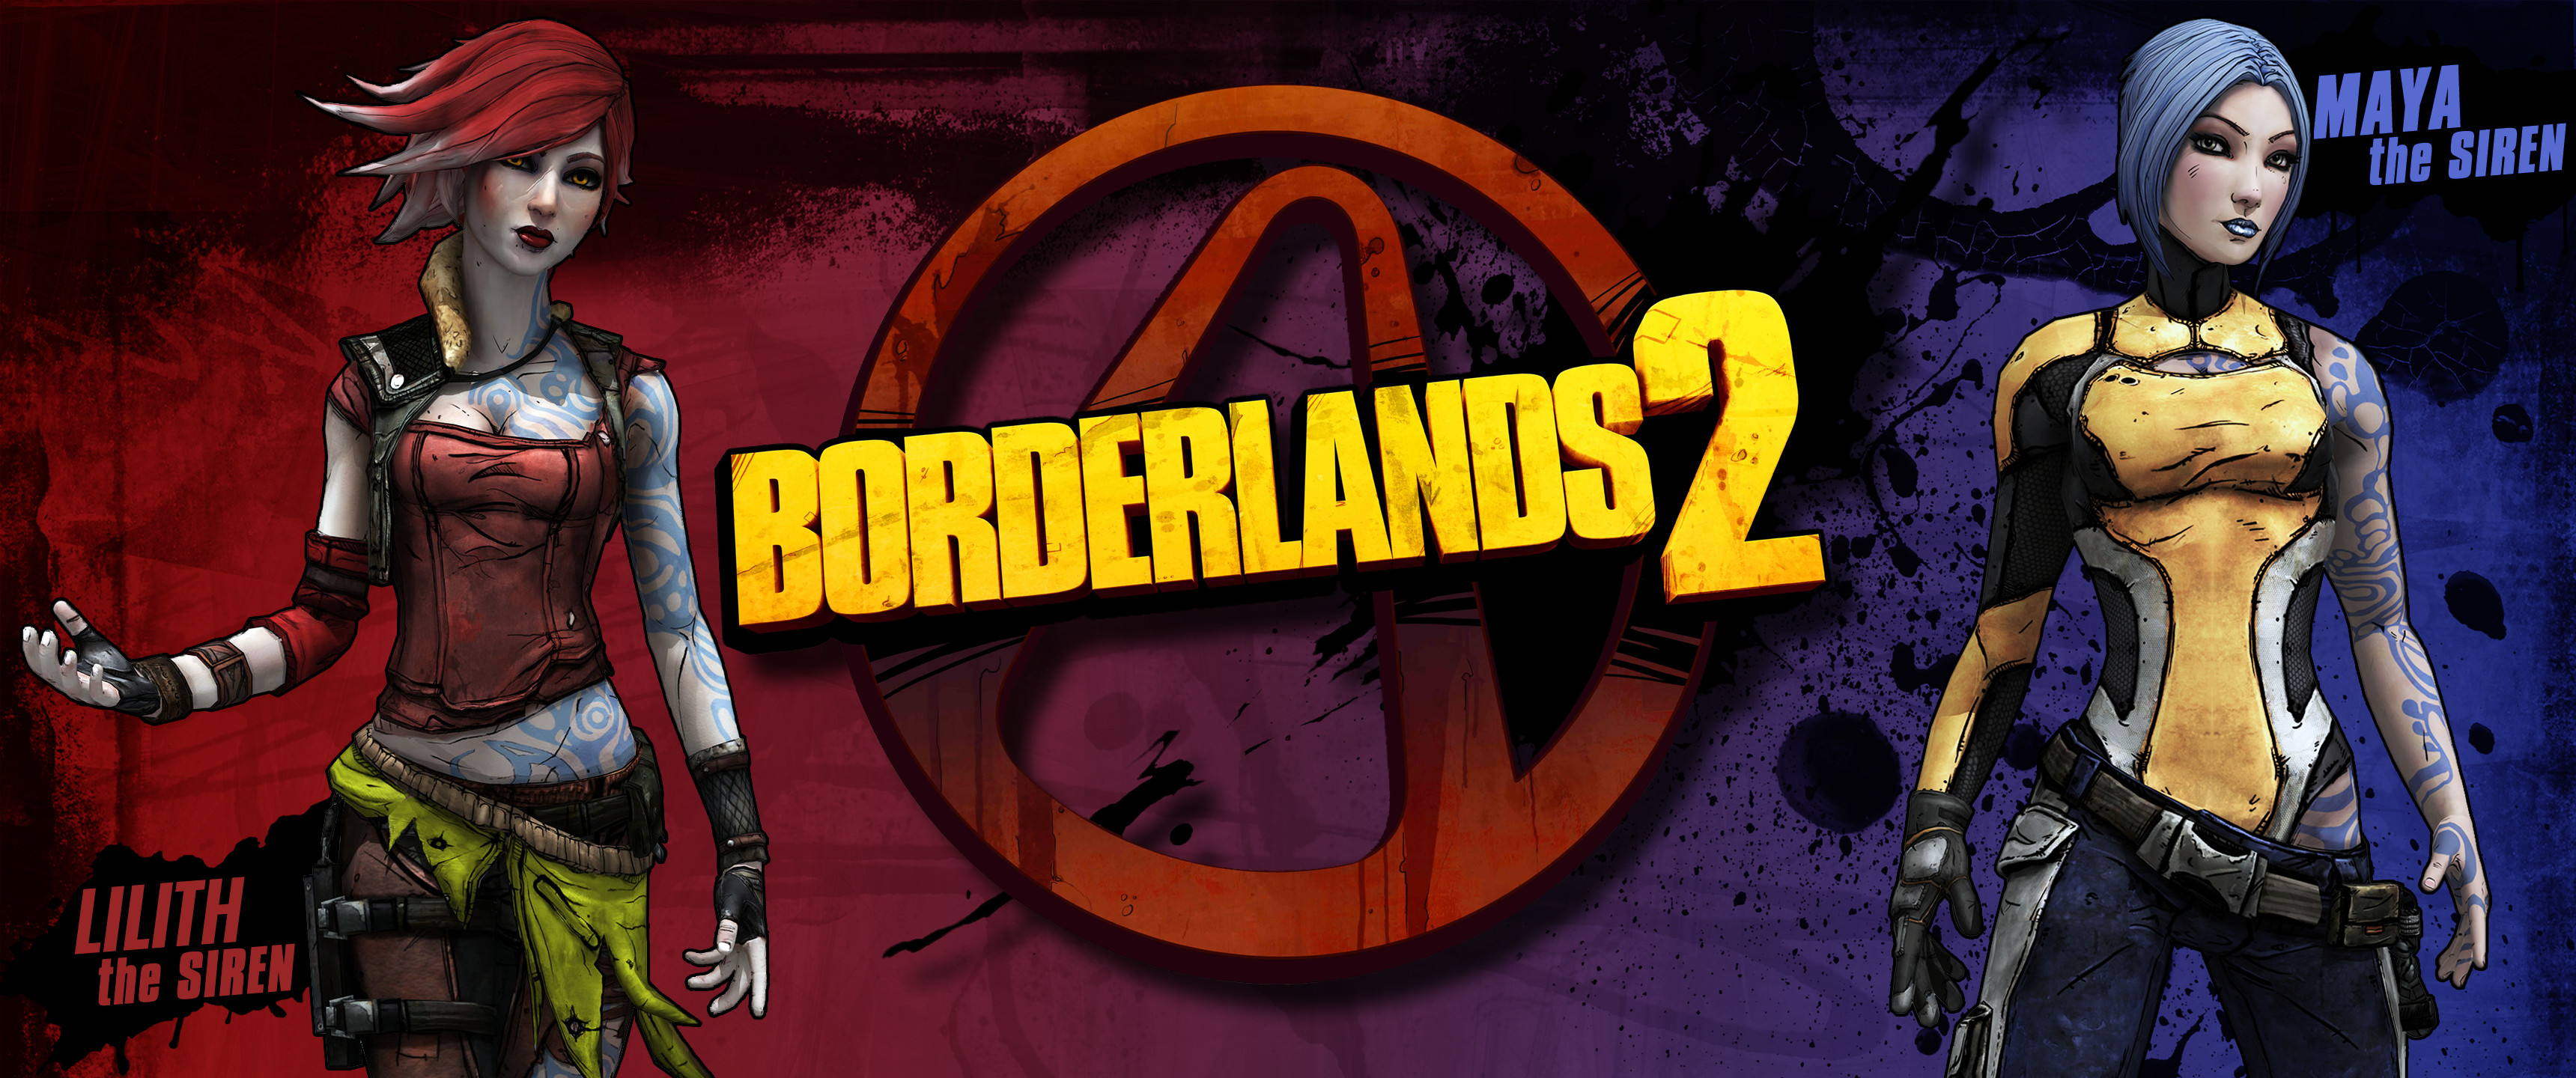 Lilith Borderlands 2 Wallpapers (77+ background pictures)  |Borderlands 2 Wallpaper Lilith